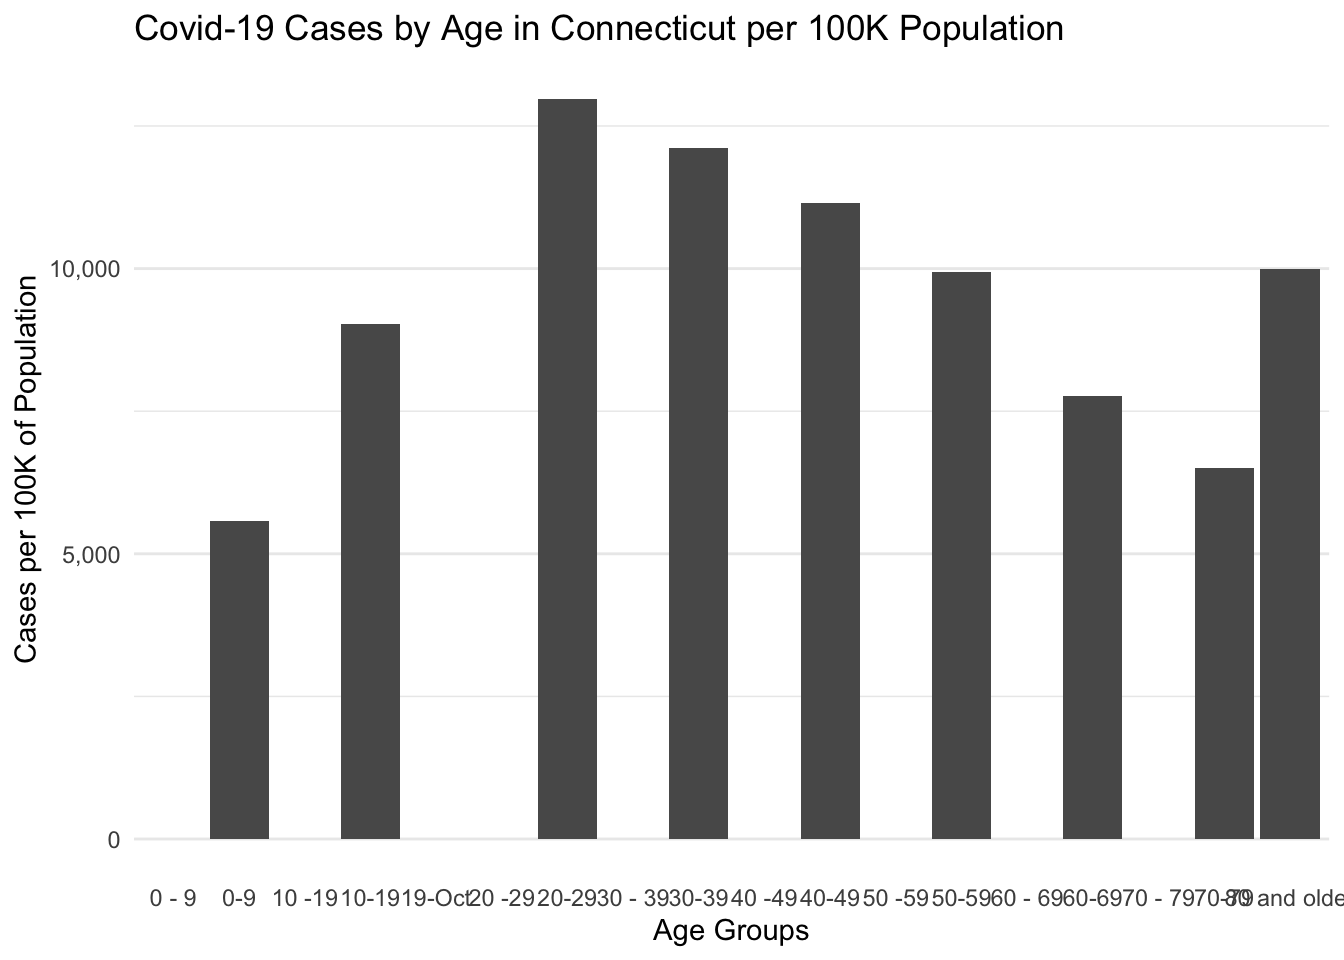 Covid-19 Cases by Age